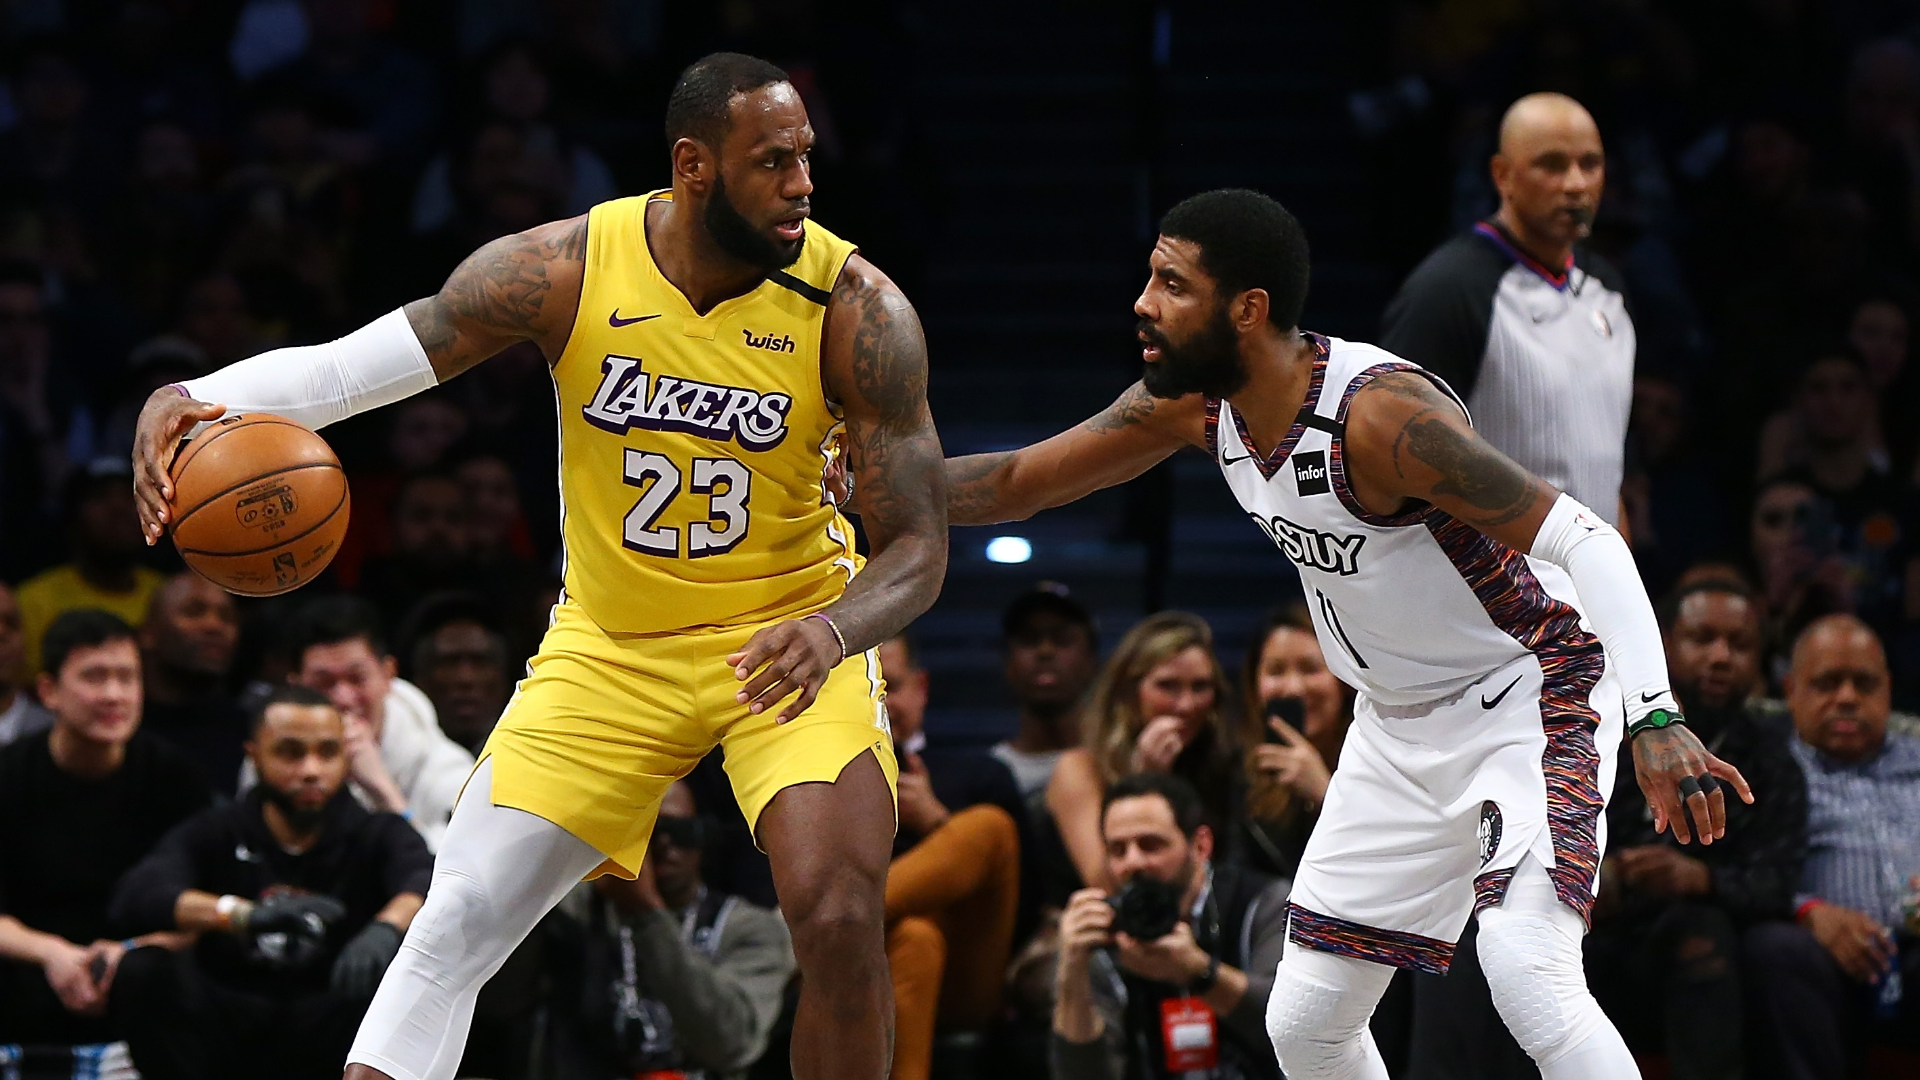 LeBron James records triple-double to power Los Angeles Lakers past Brooklyn Nets on the road